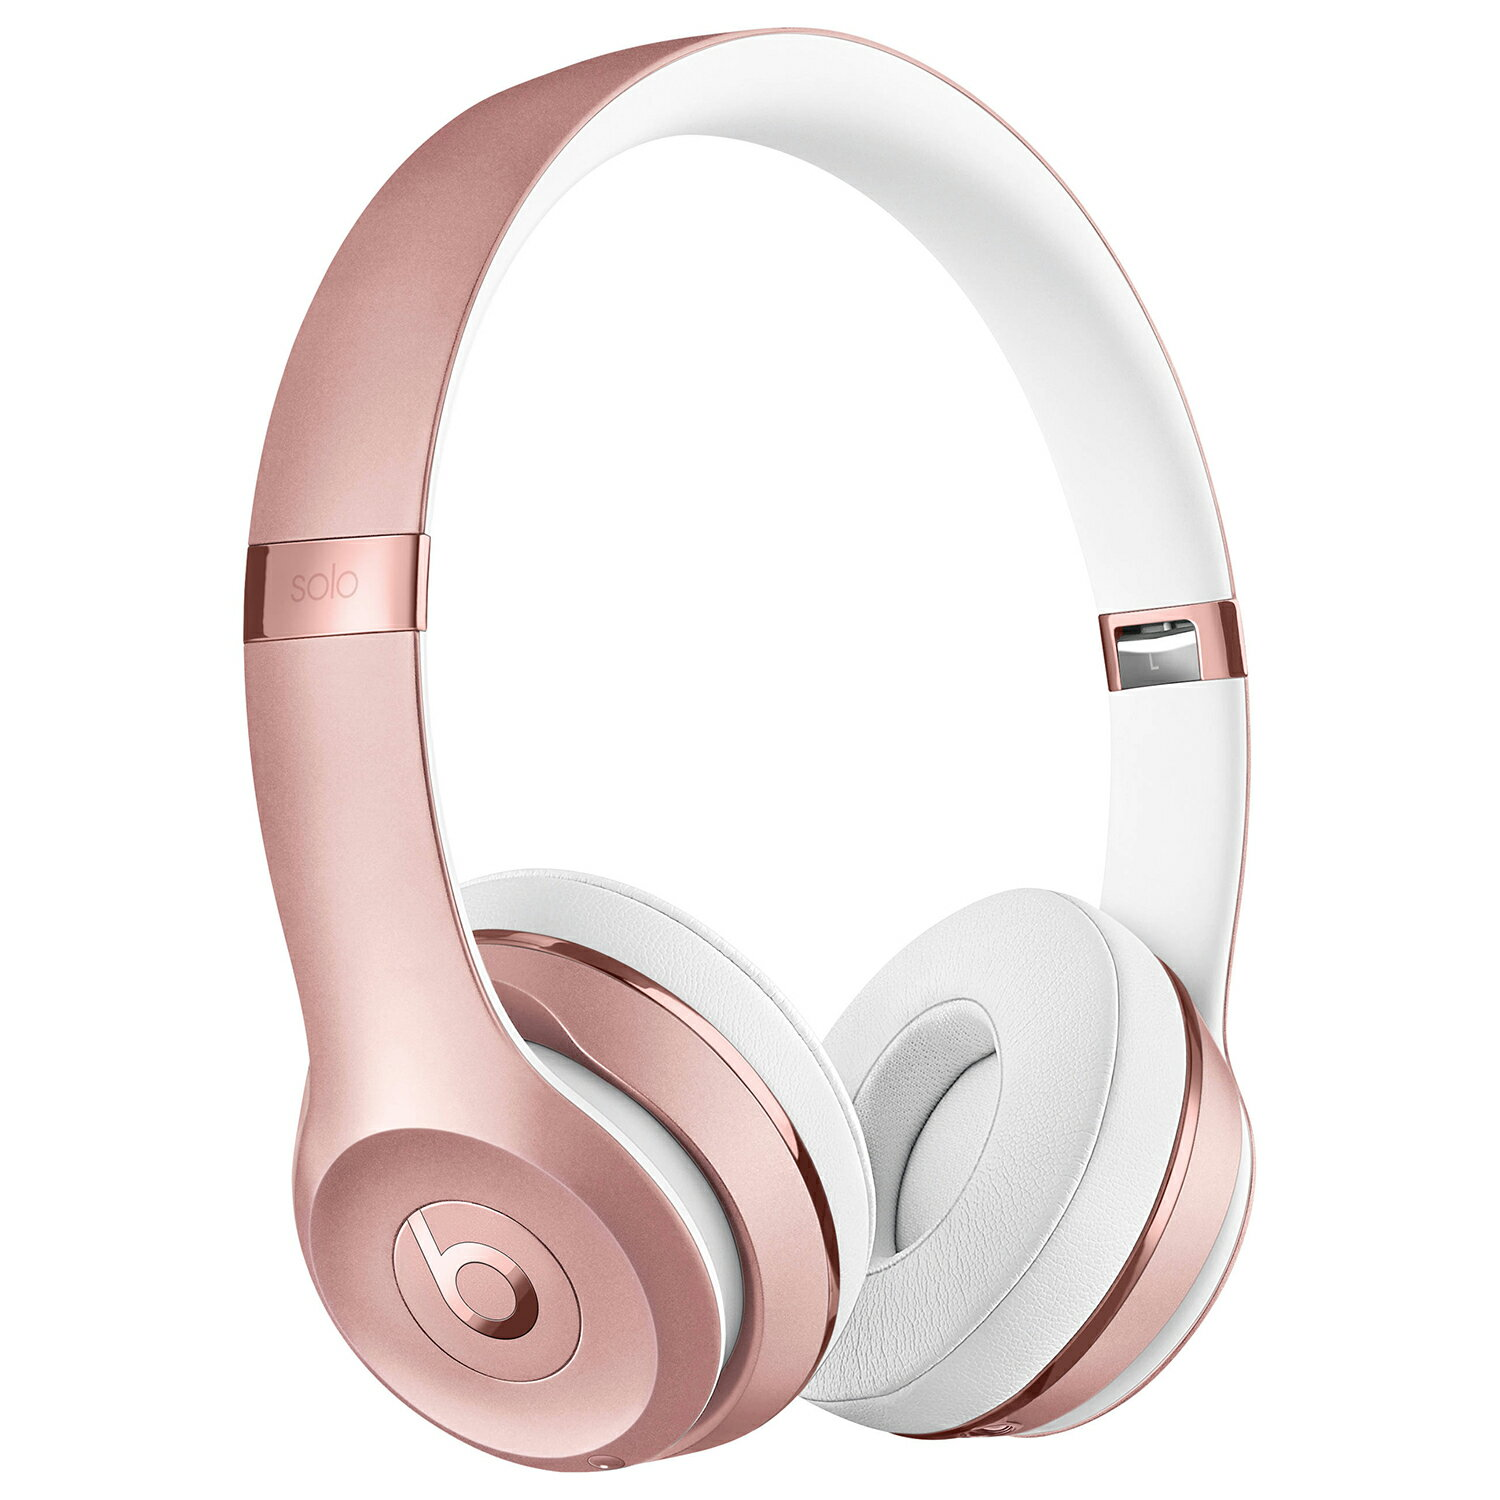 Beats by Dr Dre Solo 3 Wireless Bluetooth On-Ear Stereo Headphones - Rose Gold 0